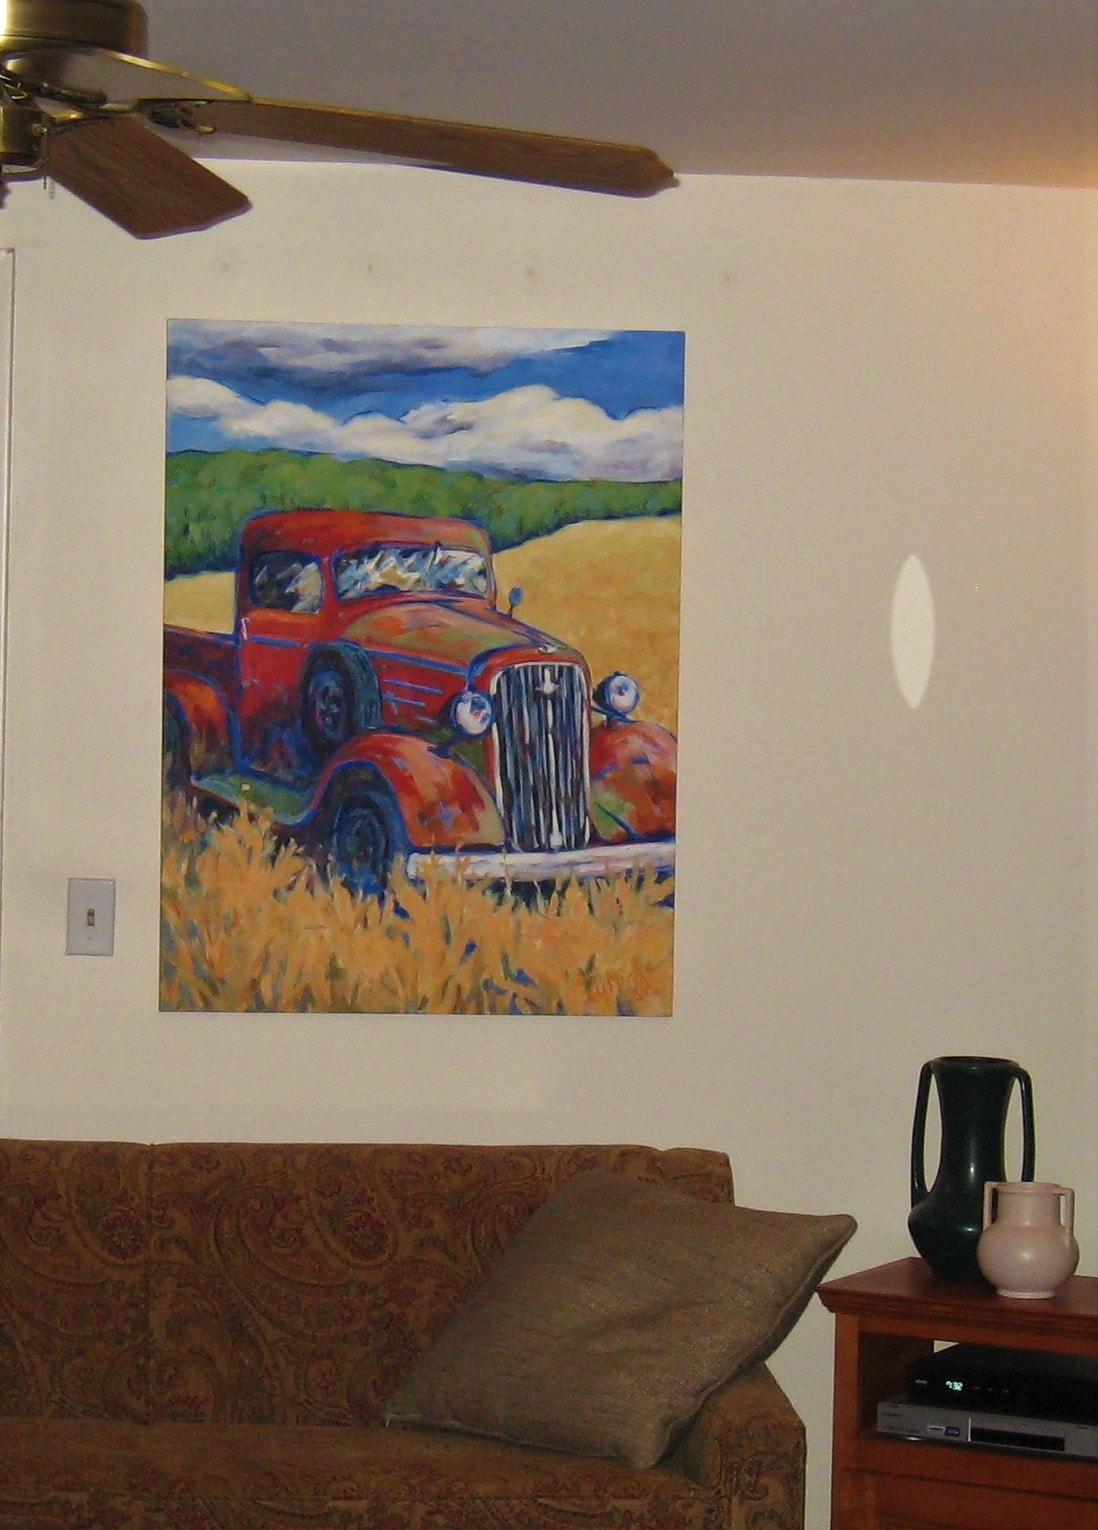 A painting of a red truck in a field displayed over a couch in a home